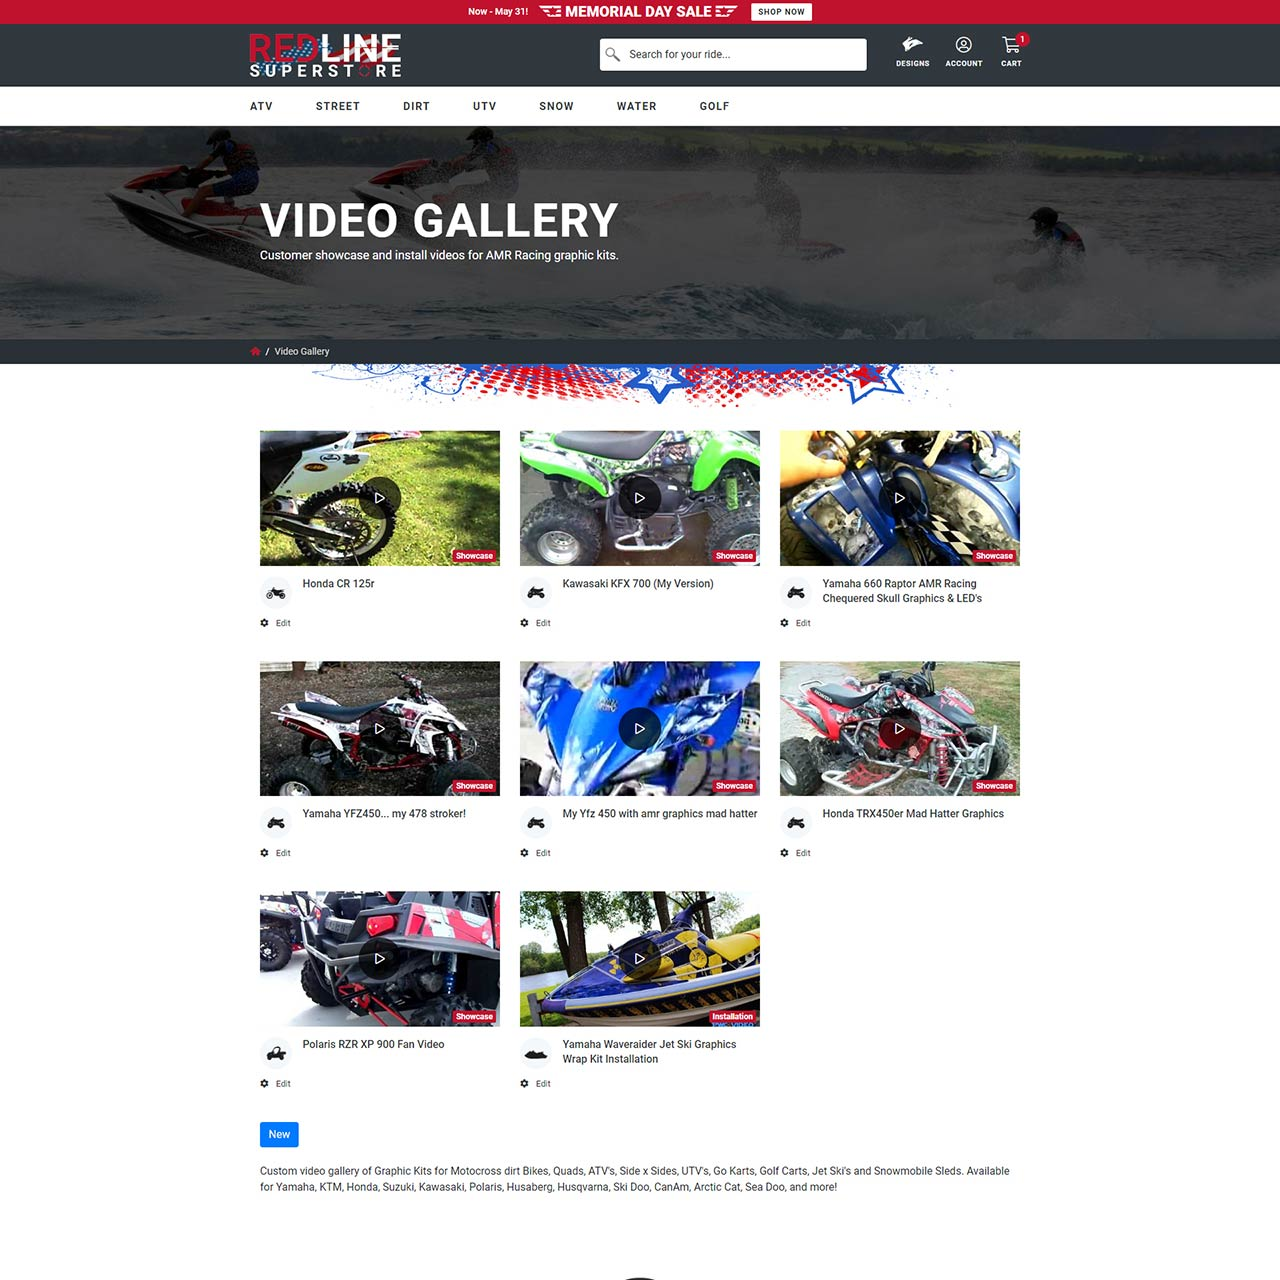 Video Gallery Page (YouTube Videos)